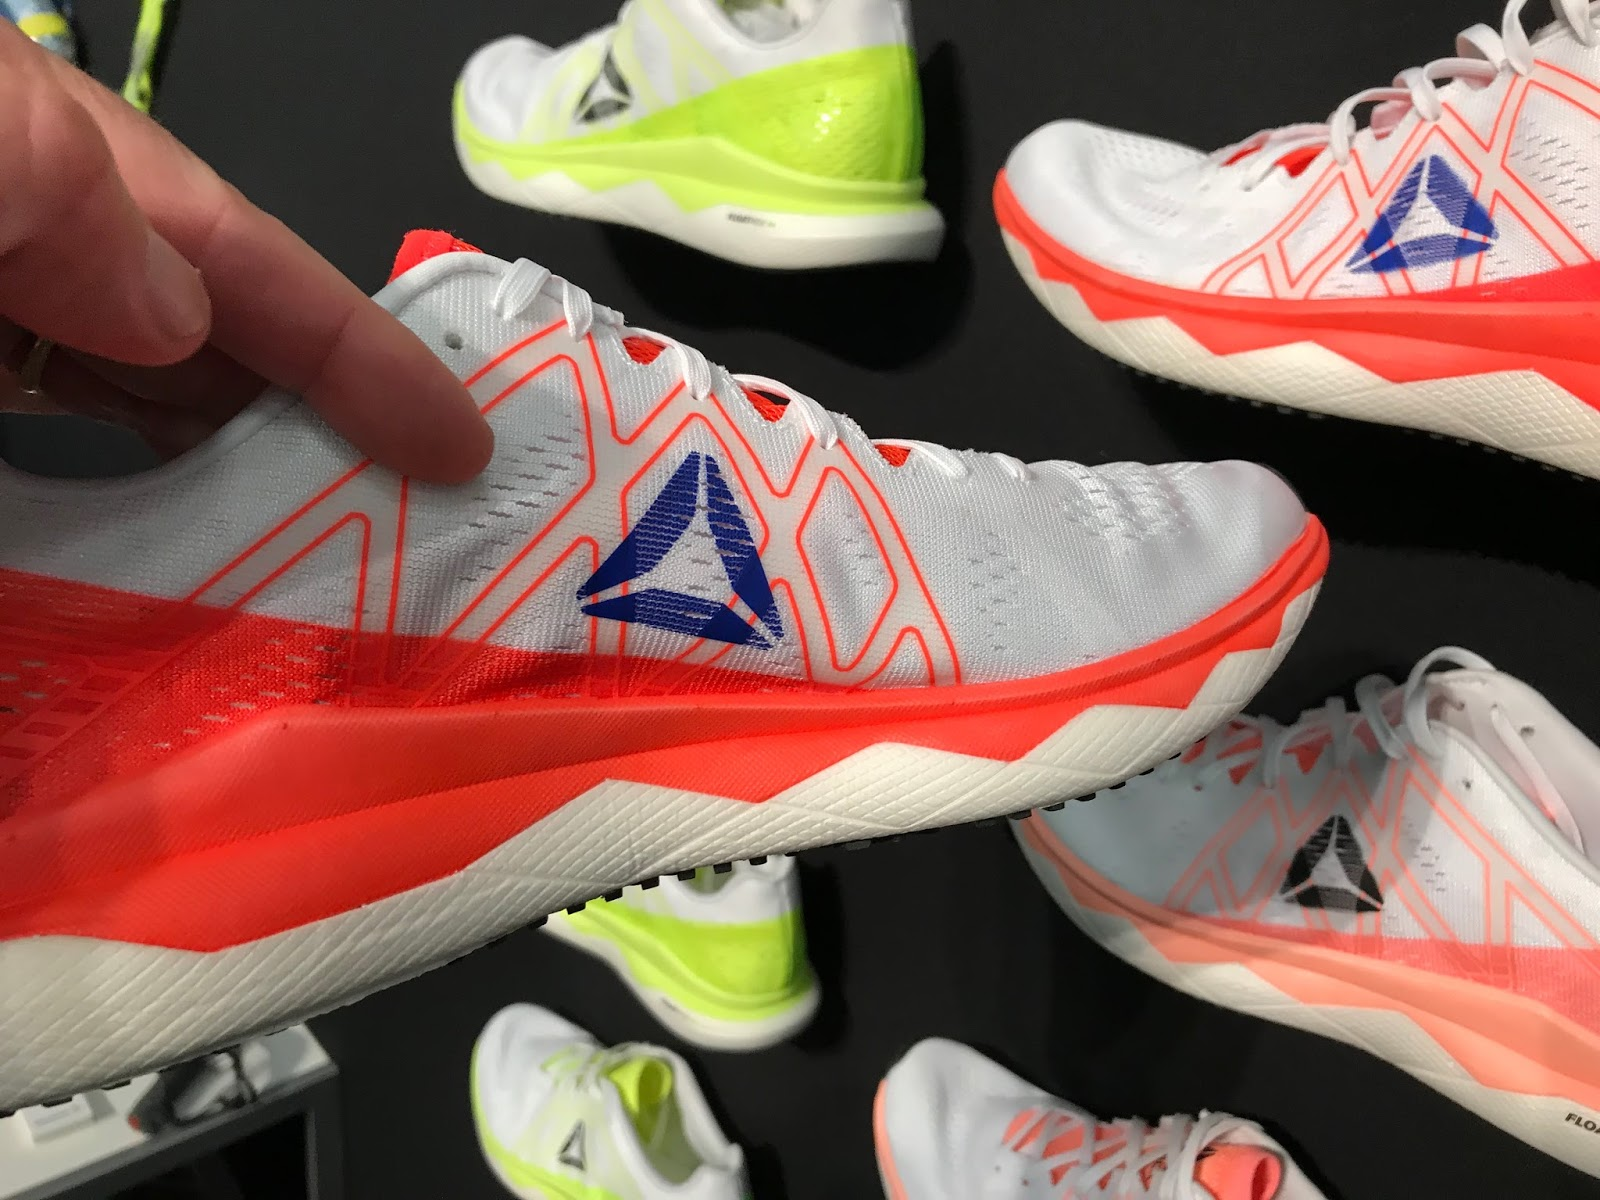 94d7b0d5895 Road Trail Run  Reebok Floatride-A Brand with a Storied Run Heritage ...